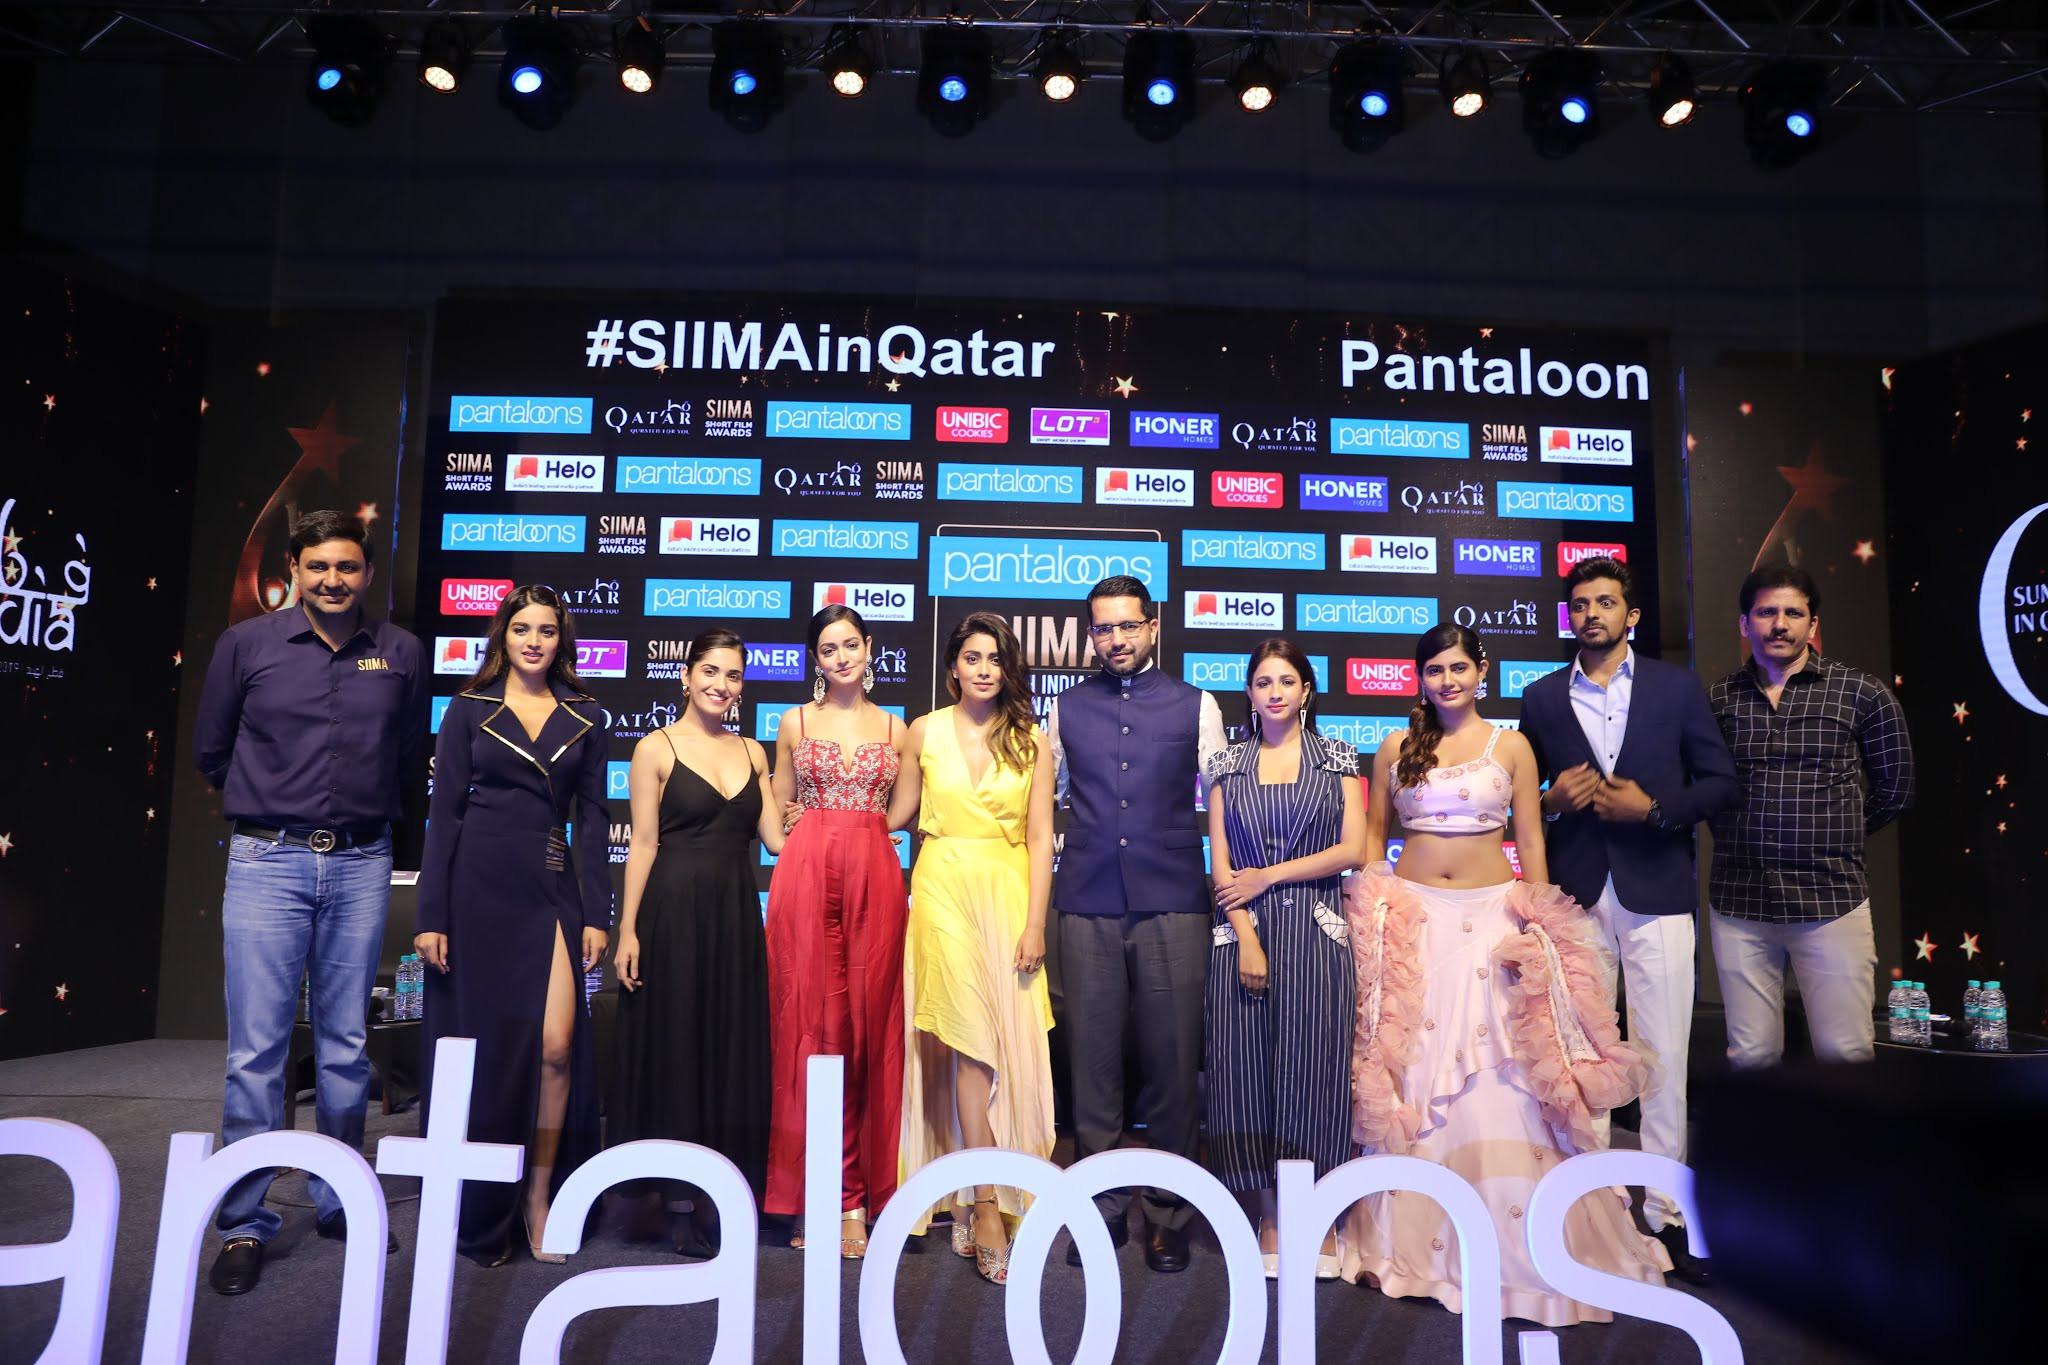 """Pantaloons SIIMA"" to host its 8th Edition in Qatar on 15th-16th August"